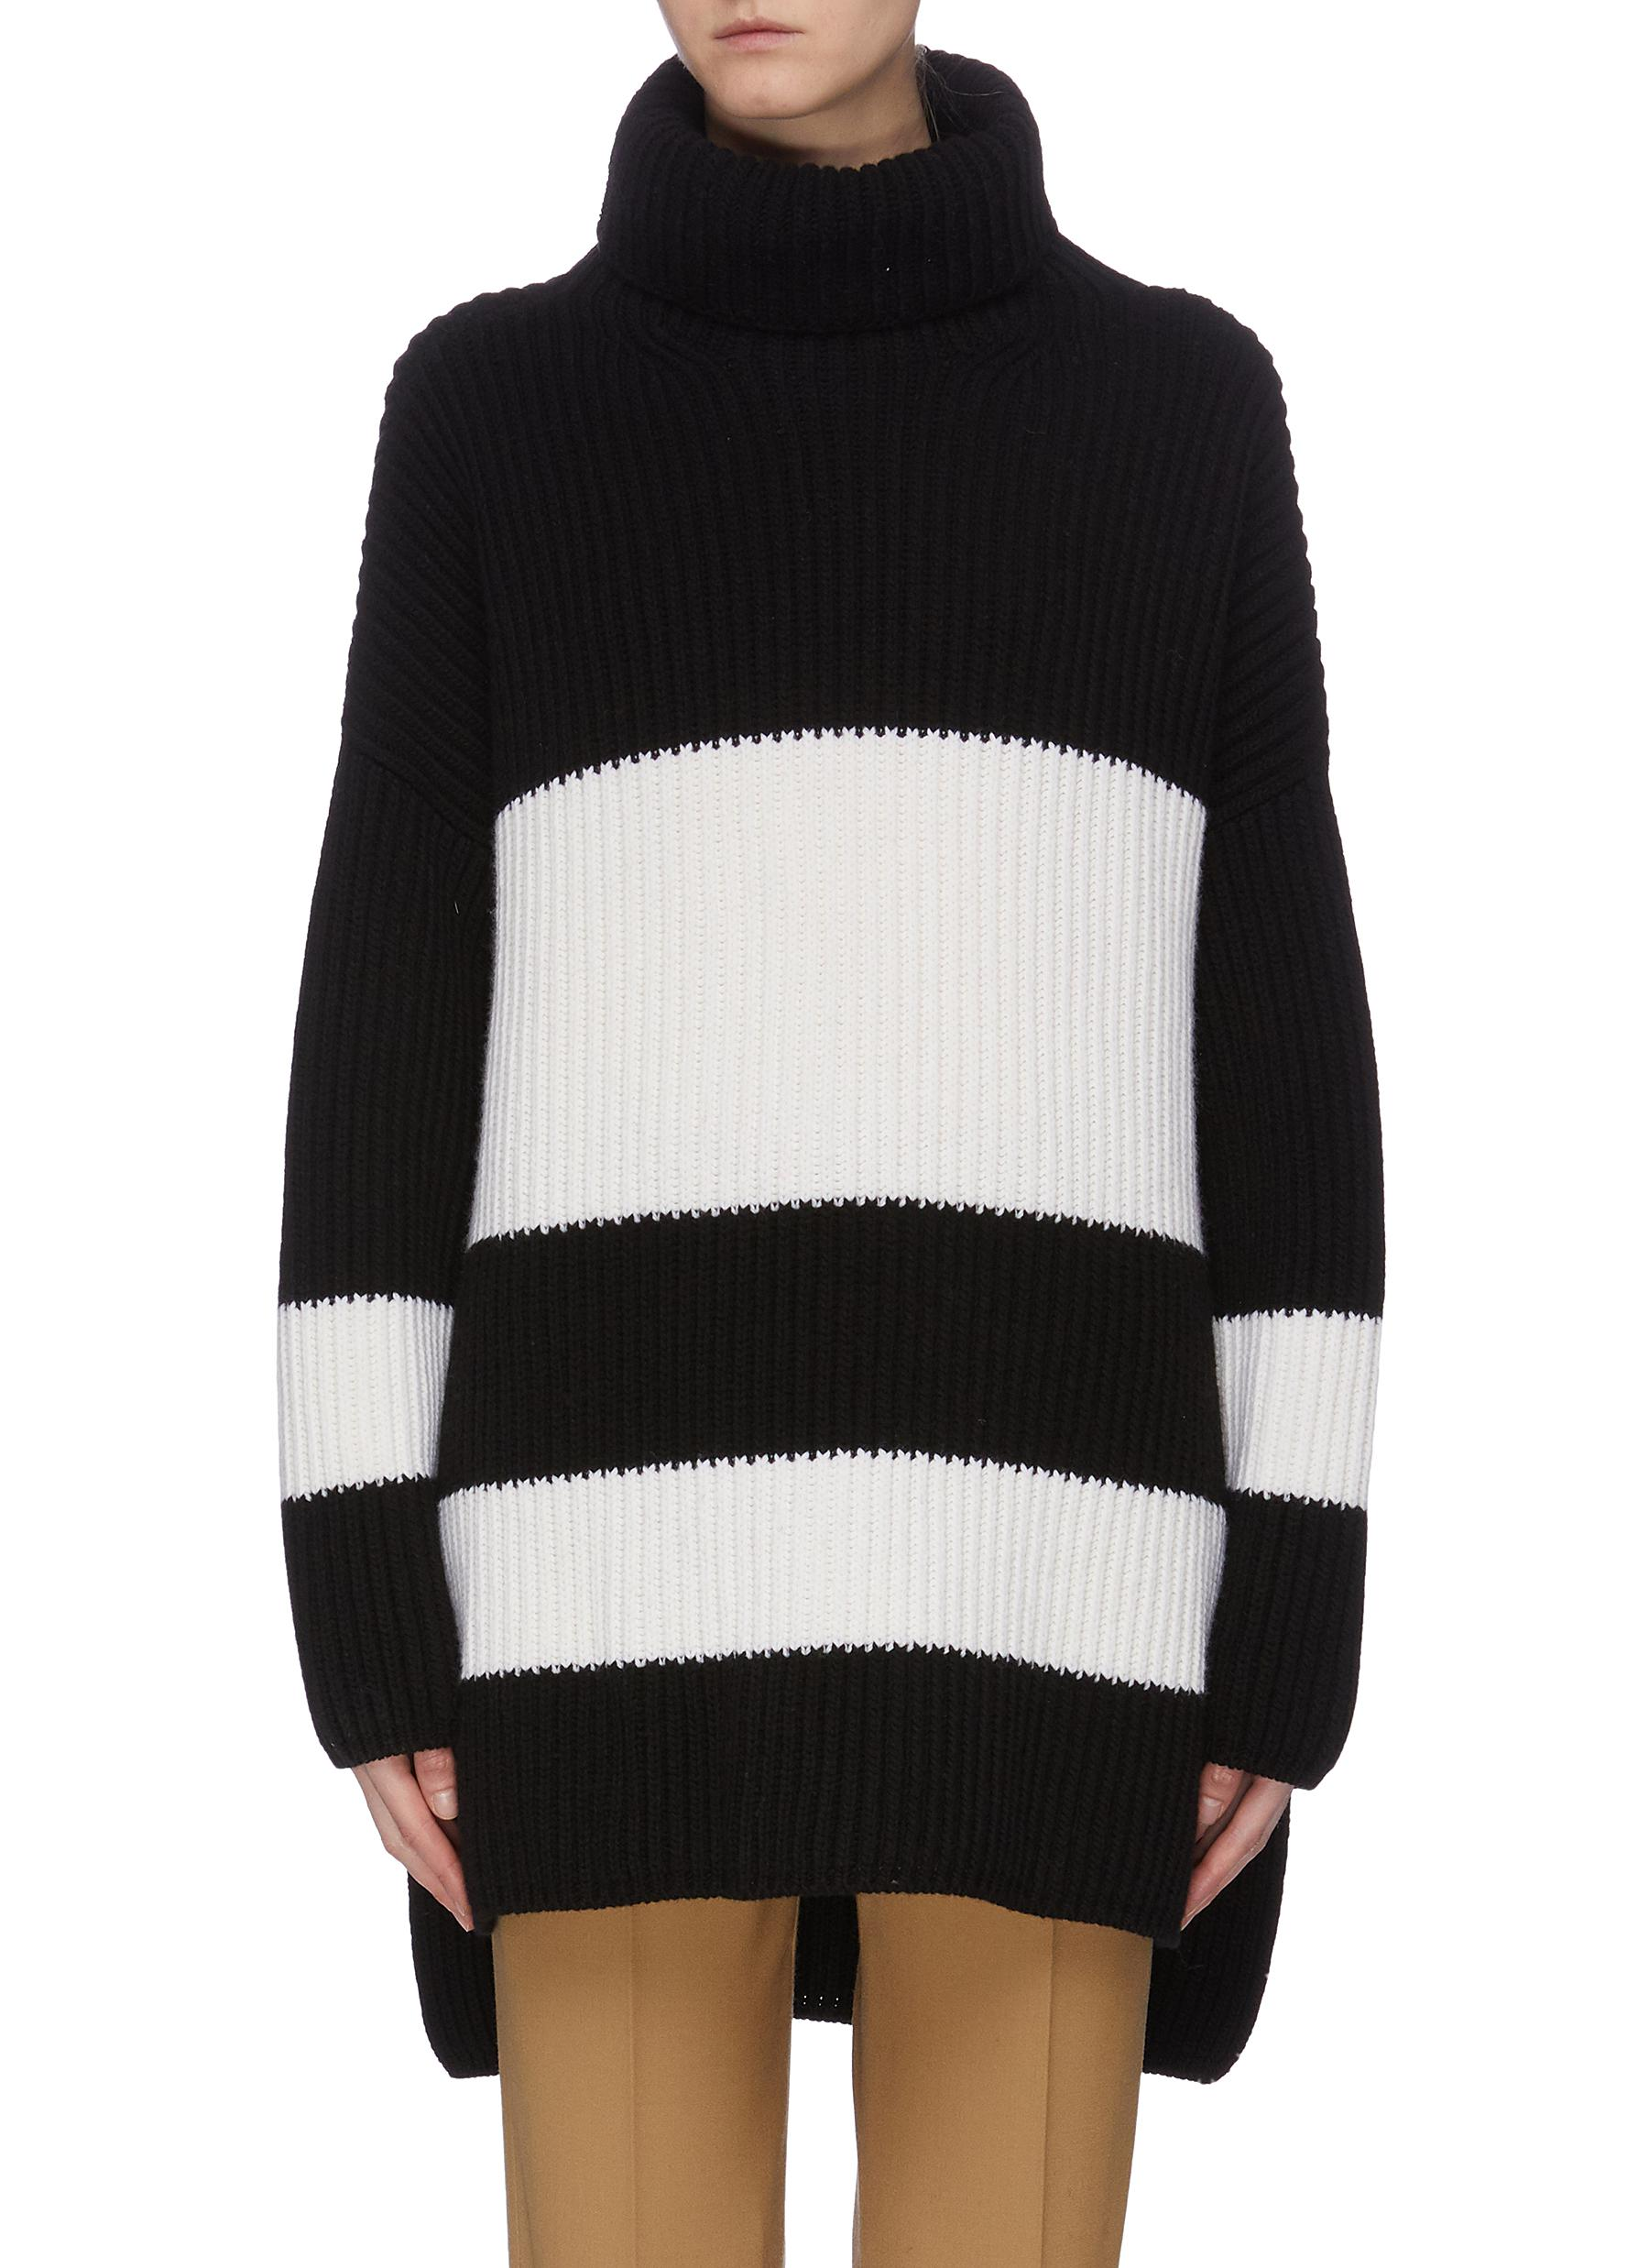 Colourblock high-low turtleneck poncho sweater by Joseph